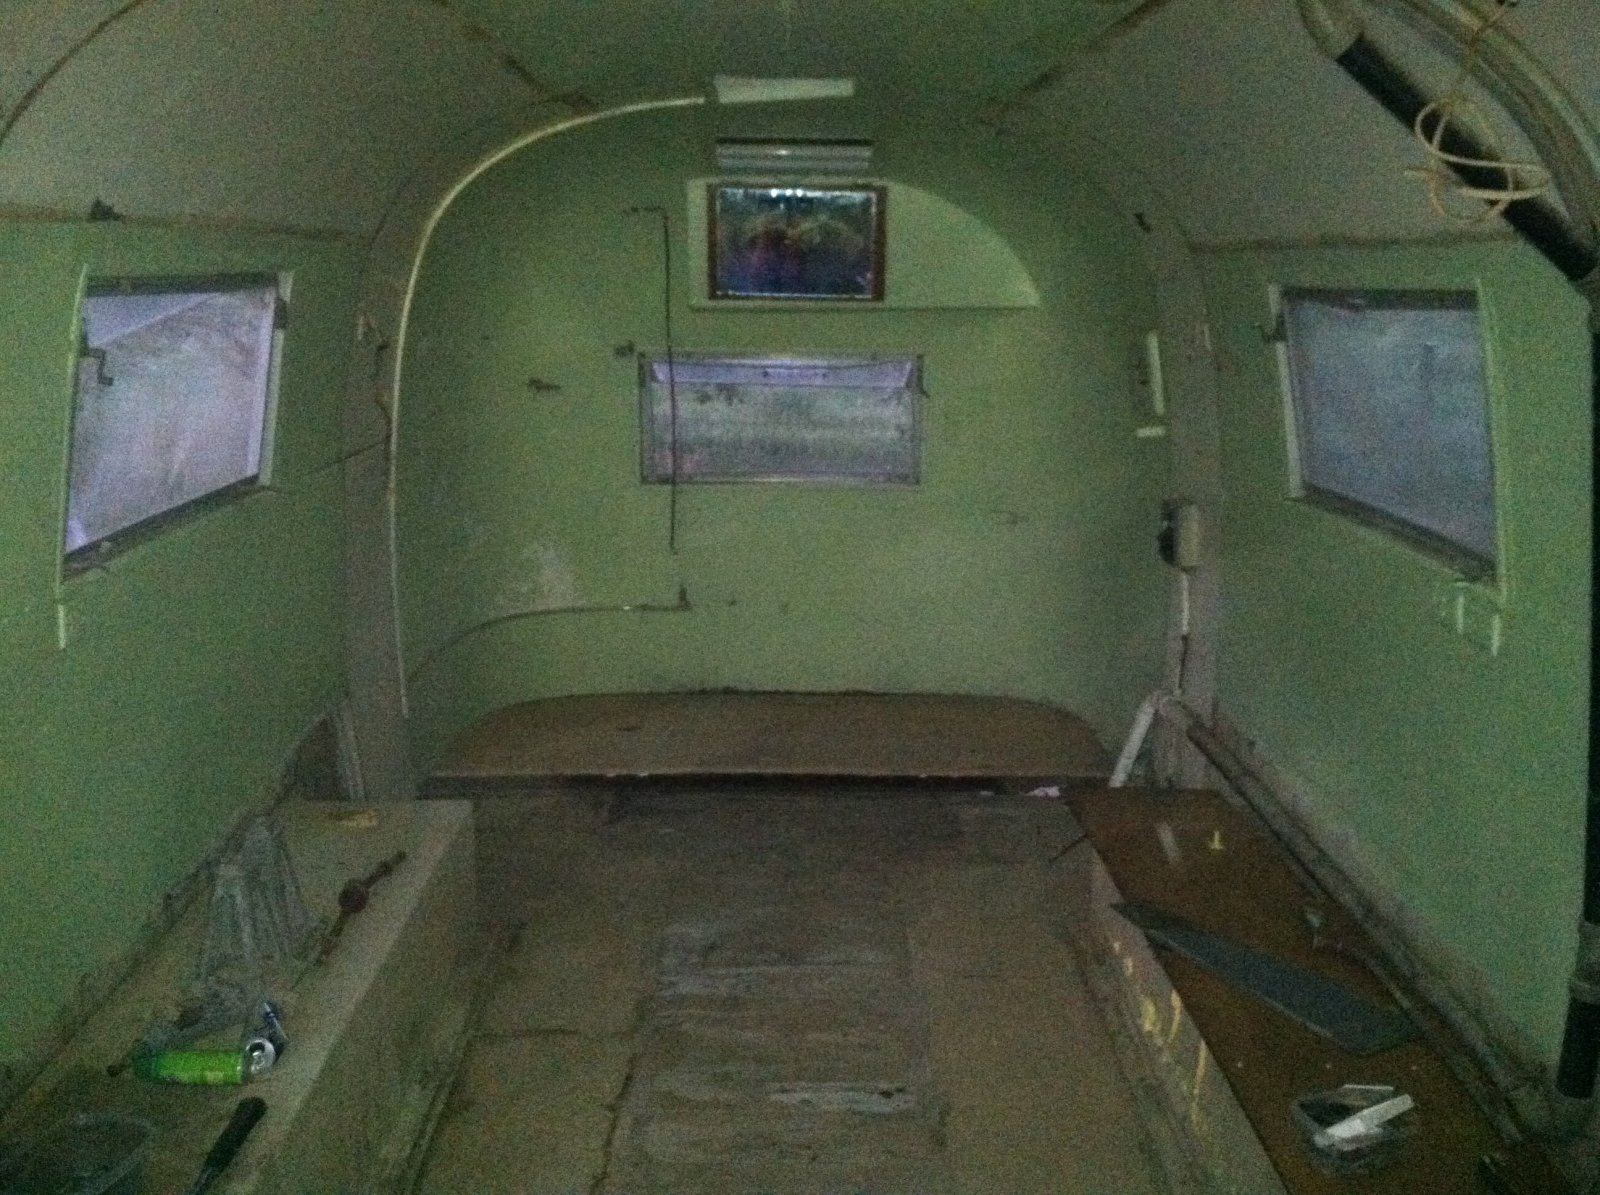 Click image for larger version  Name:Kathy's Phone Airstream Demo 008.jpg Views:215 Size:395.5 KB ID:163960